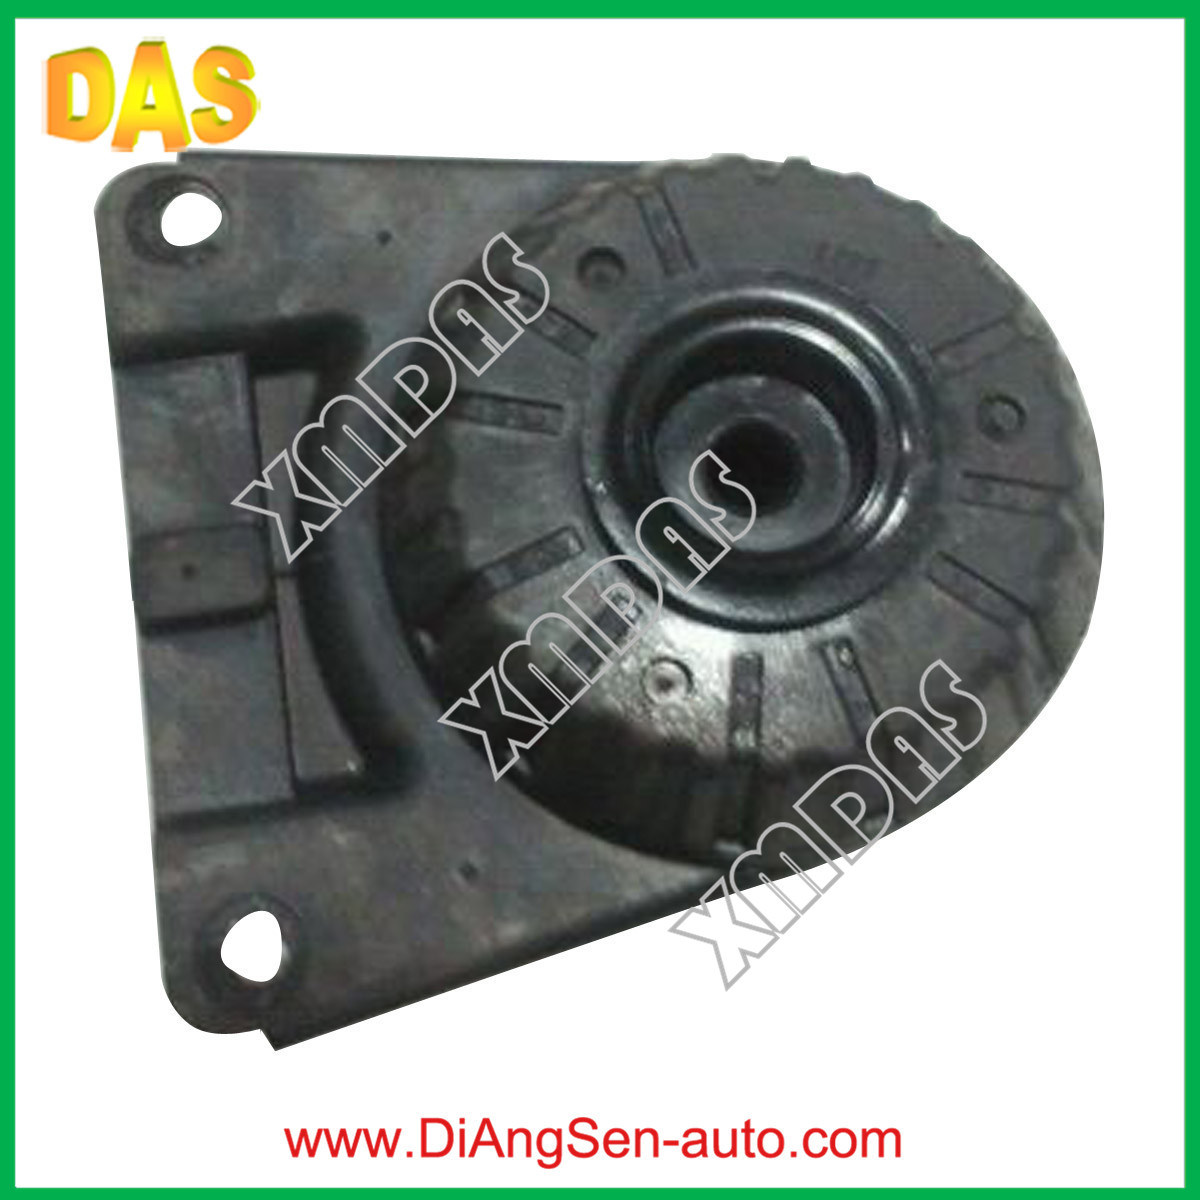 China 4s71 18198 ab automotive parts factory support strut mounting for ford china strut mounting shock absorber mount